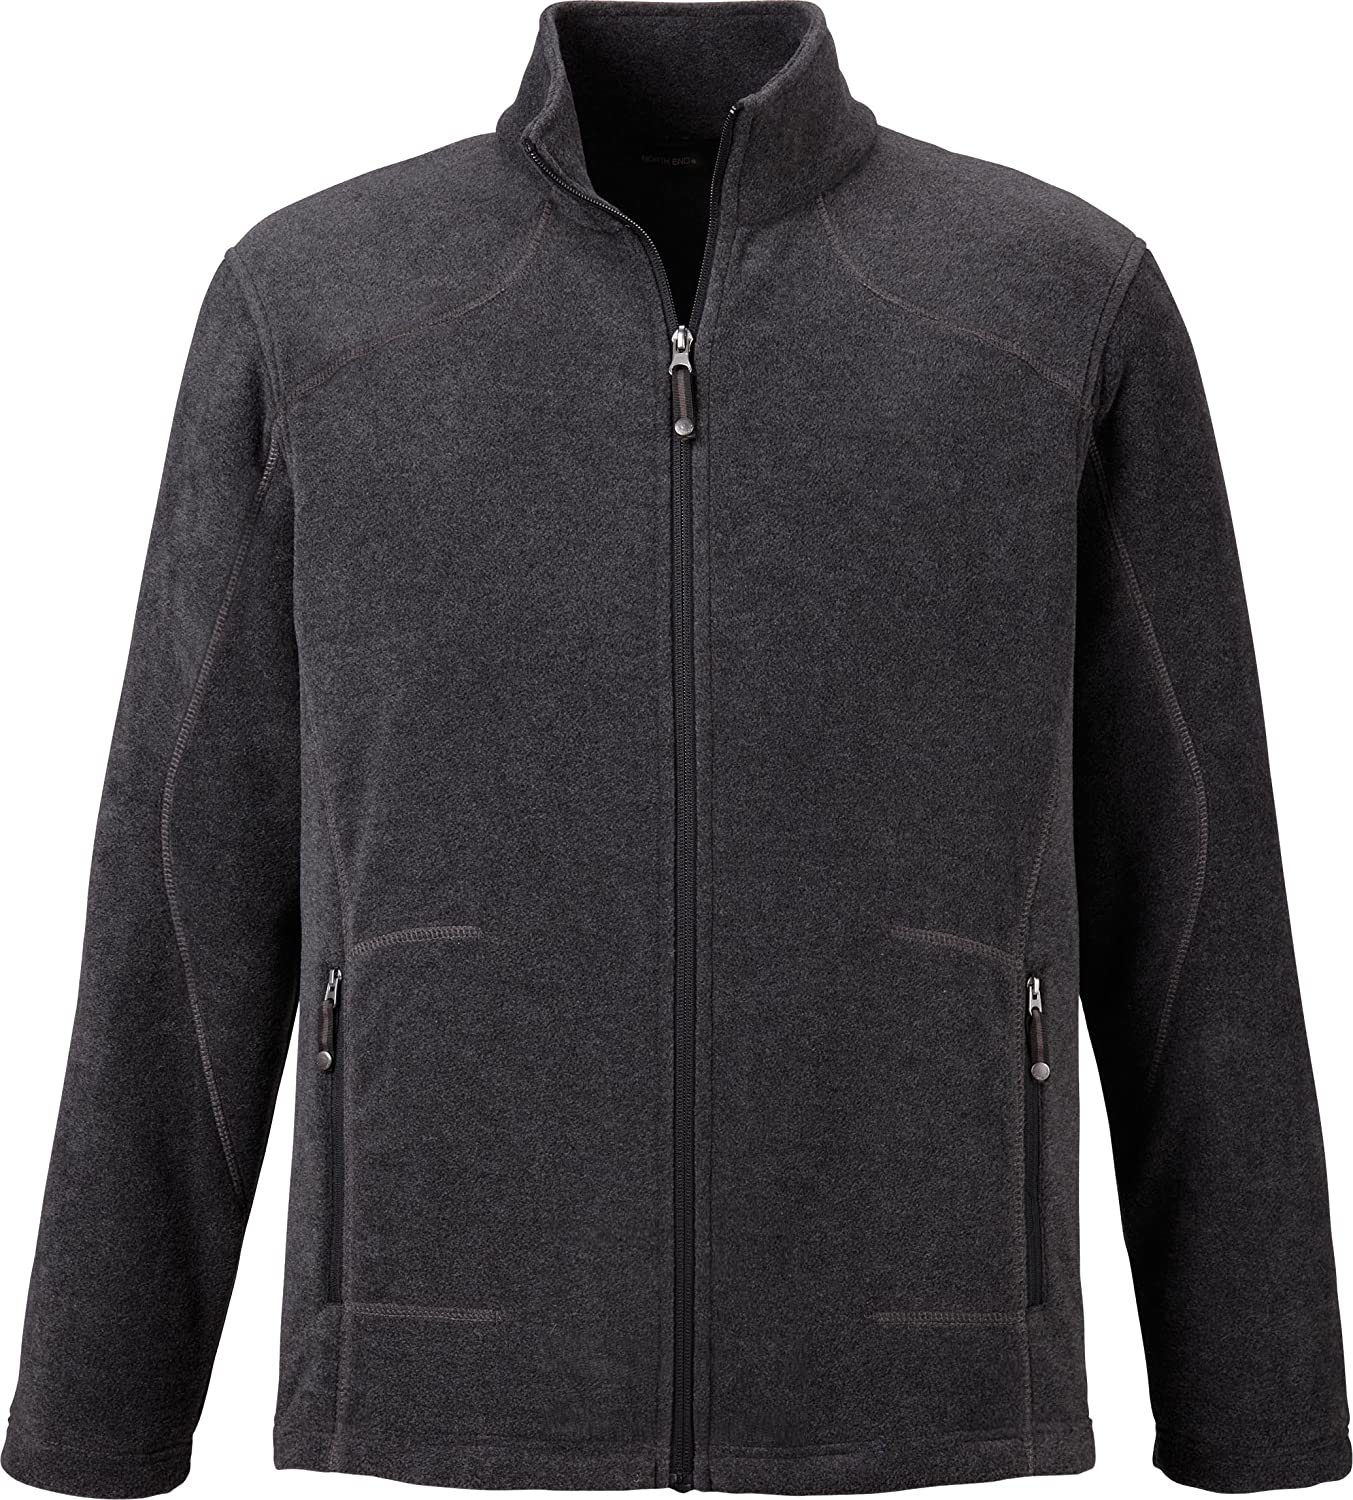 North End Mens Fleece Jacket. 88172 - Small - Heather Charcoal